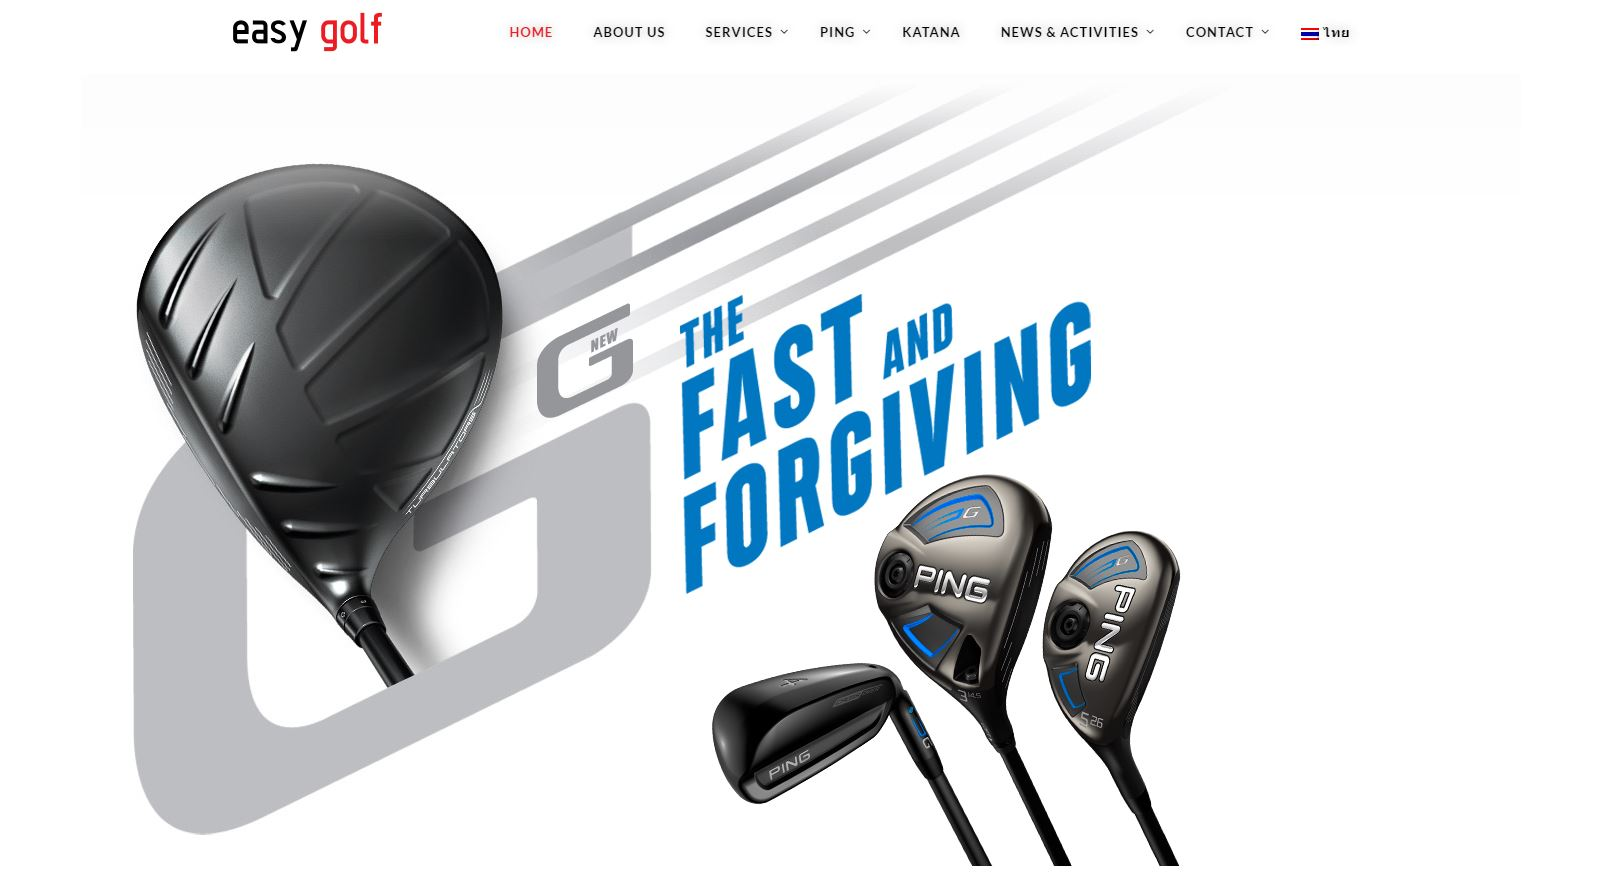 ็Happy Bugs: Easygolf Website